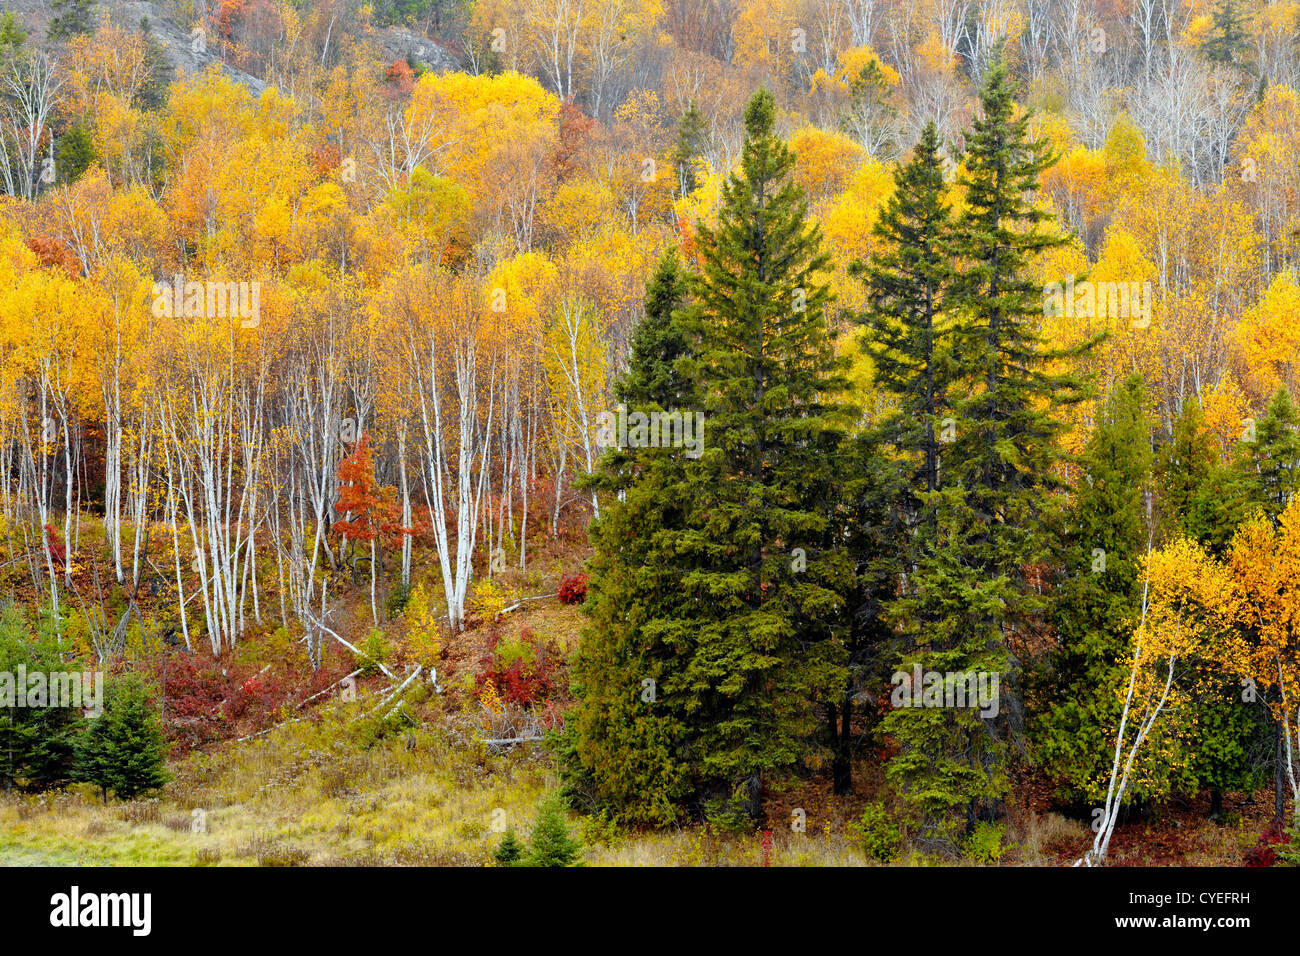 Spruces, birch and aspen on hillside in Junction Creek Valley in autumn, Greater Sudbury, Ontario, Canada - Stock Image